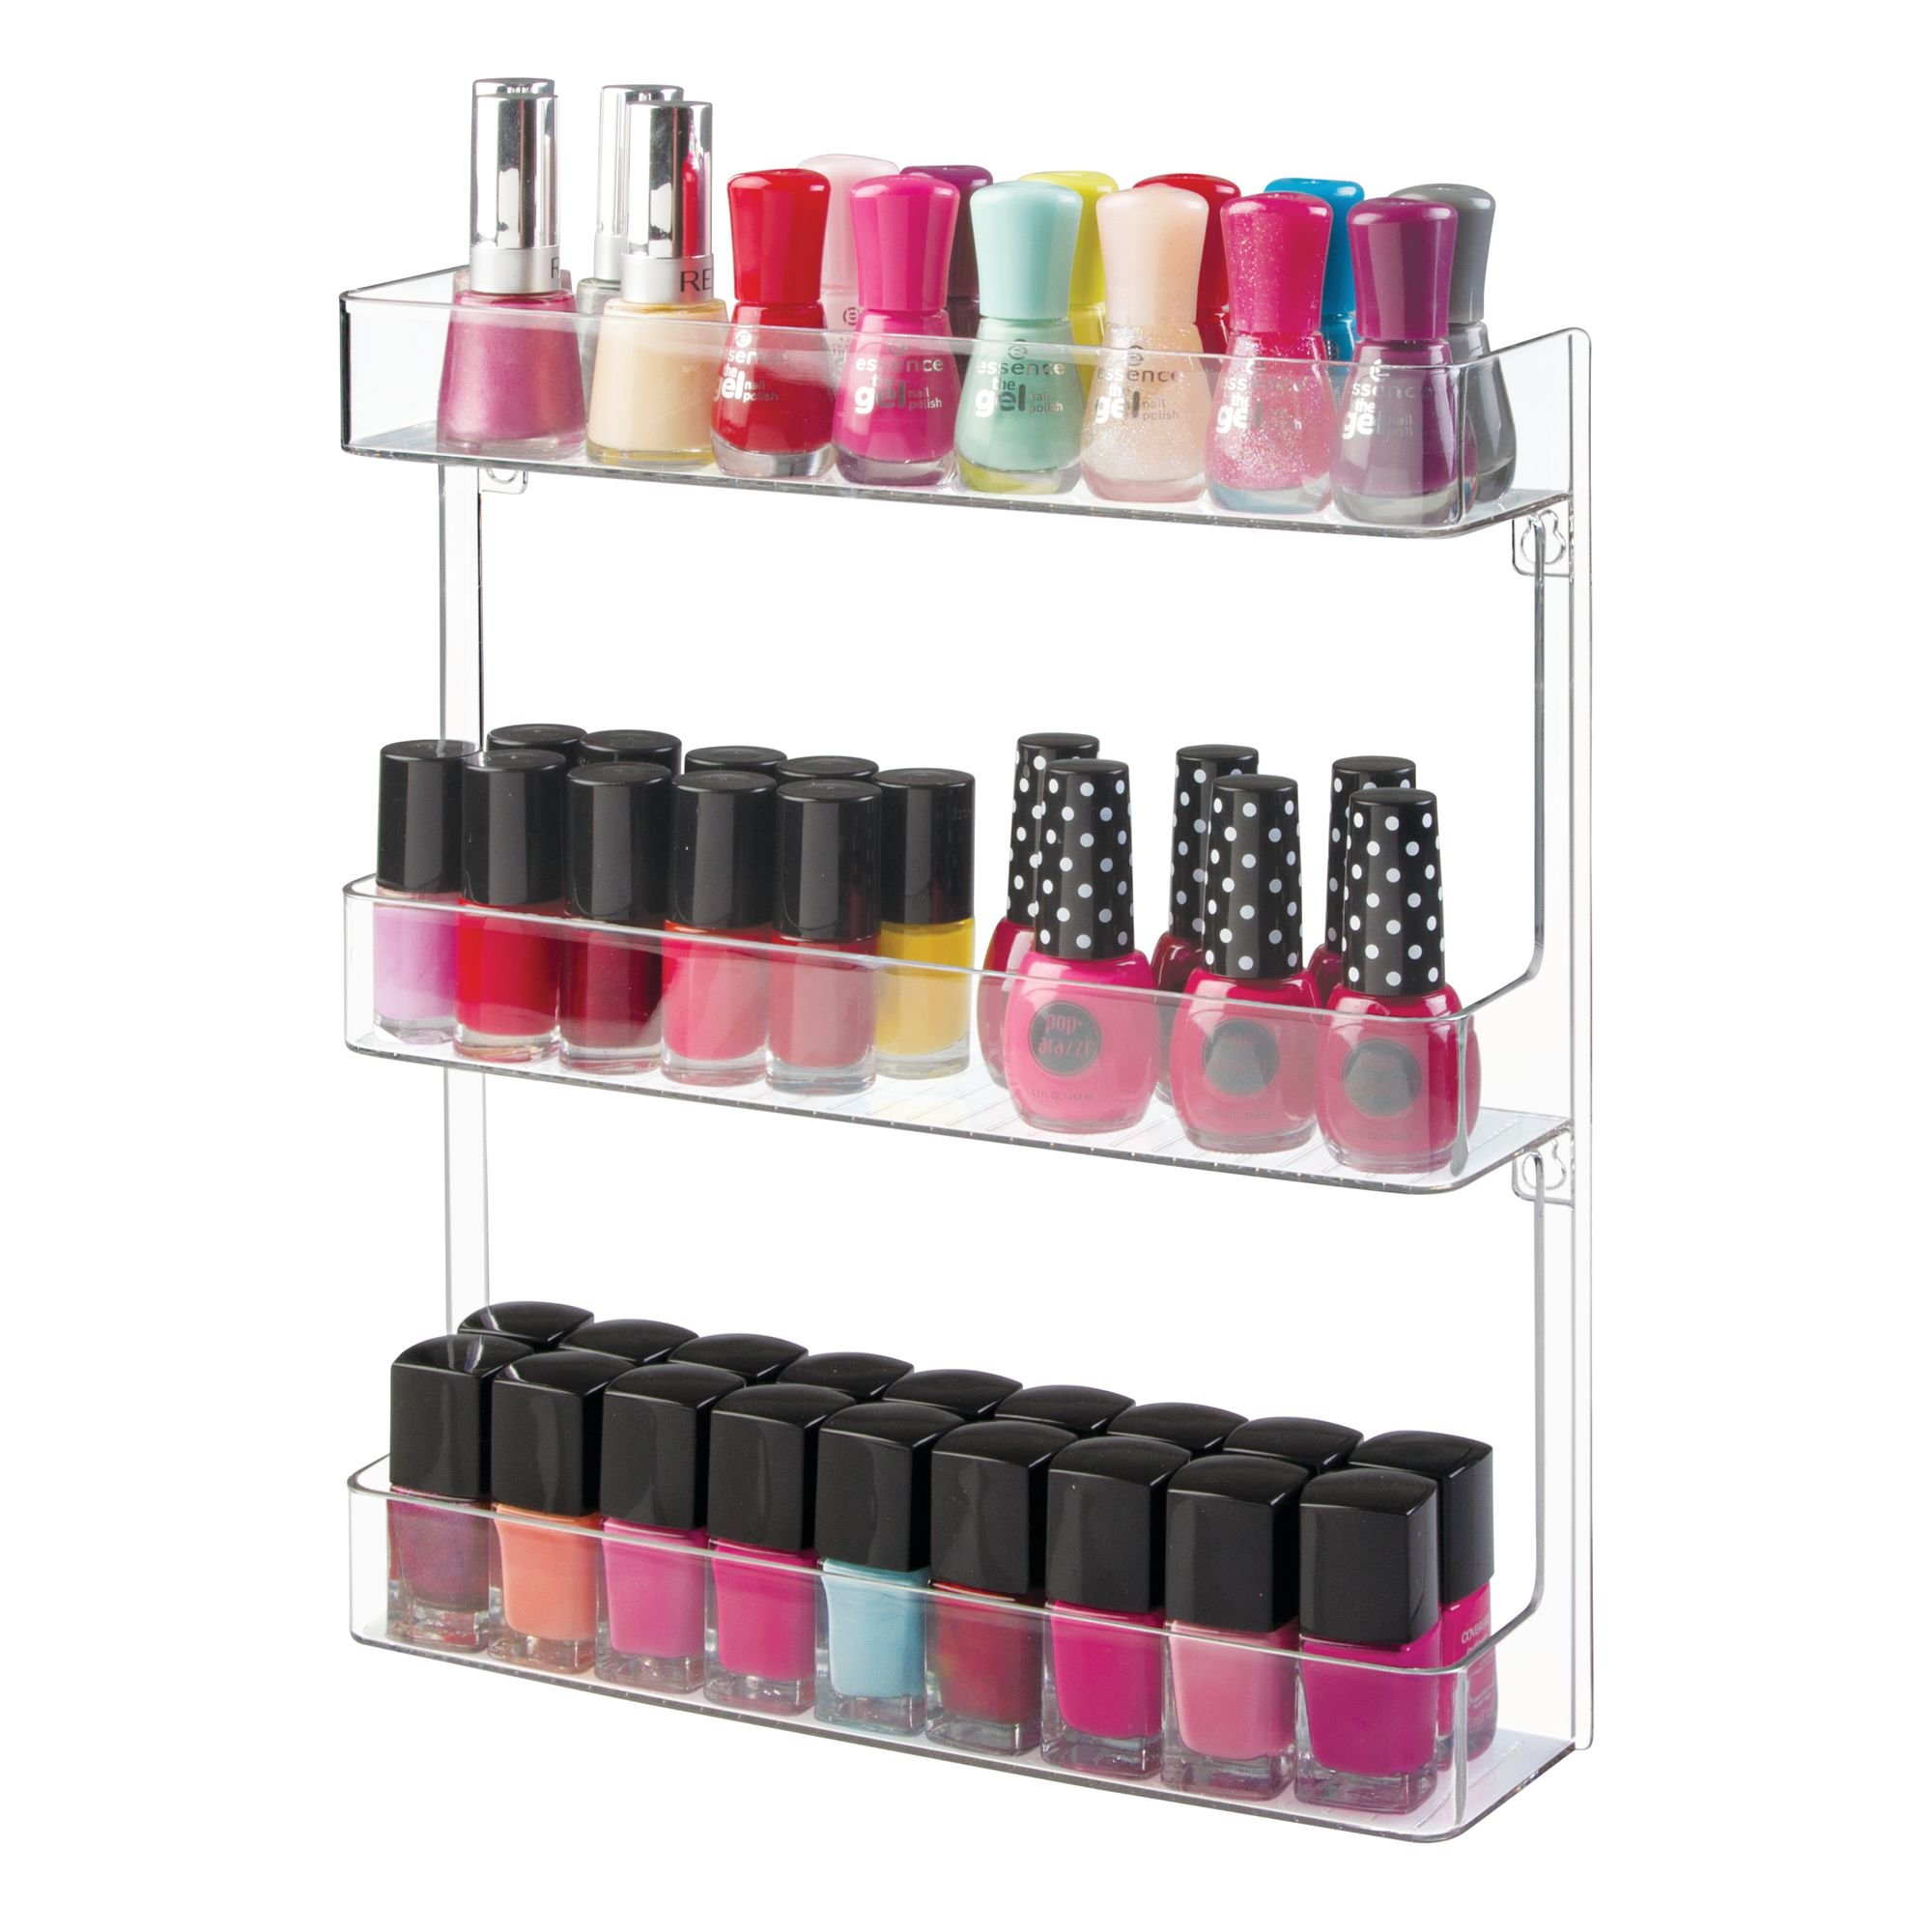 MDesign Wall Mount Plastic Nail Polish Makeup Organizer